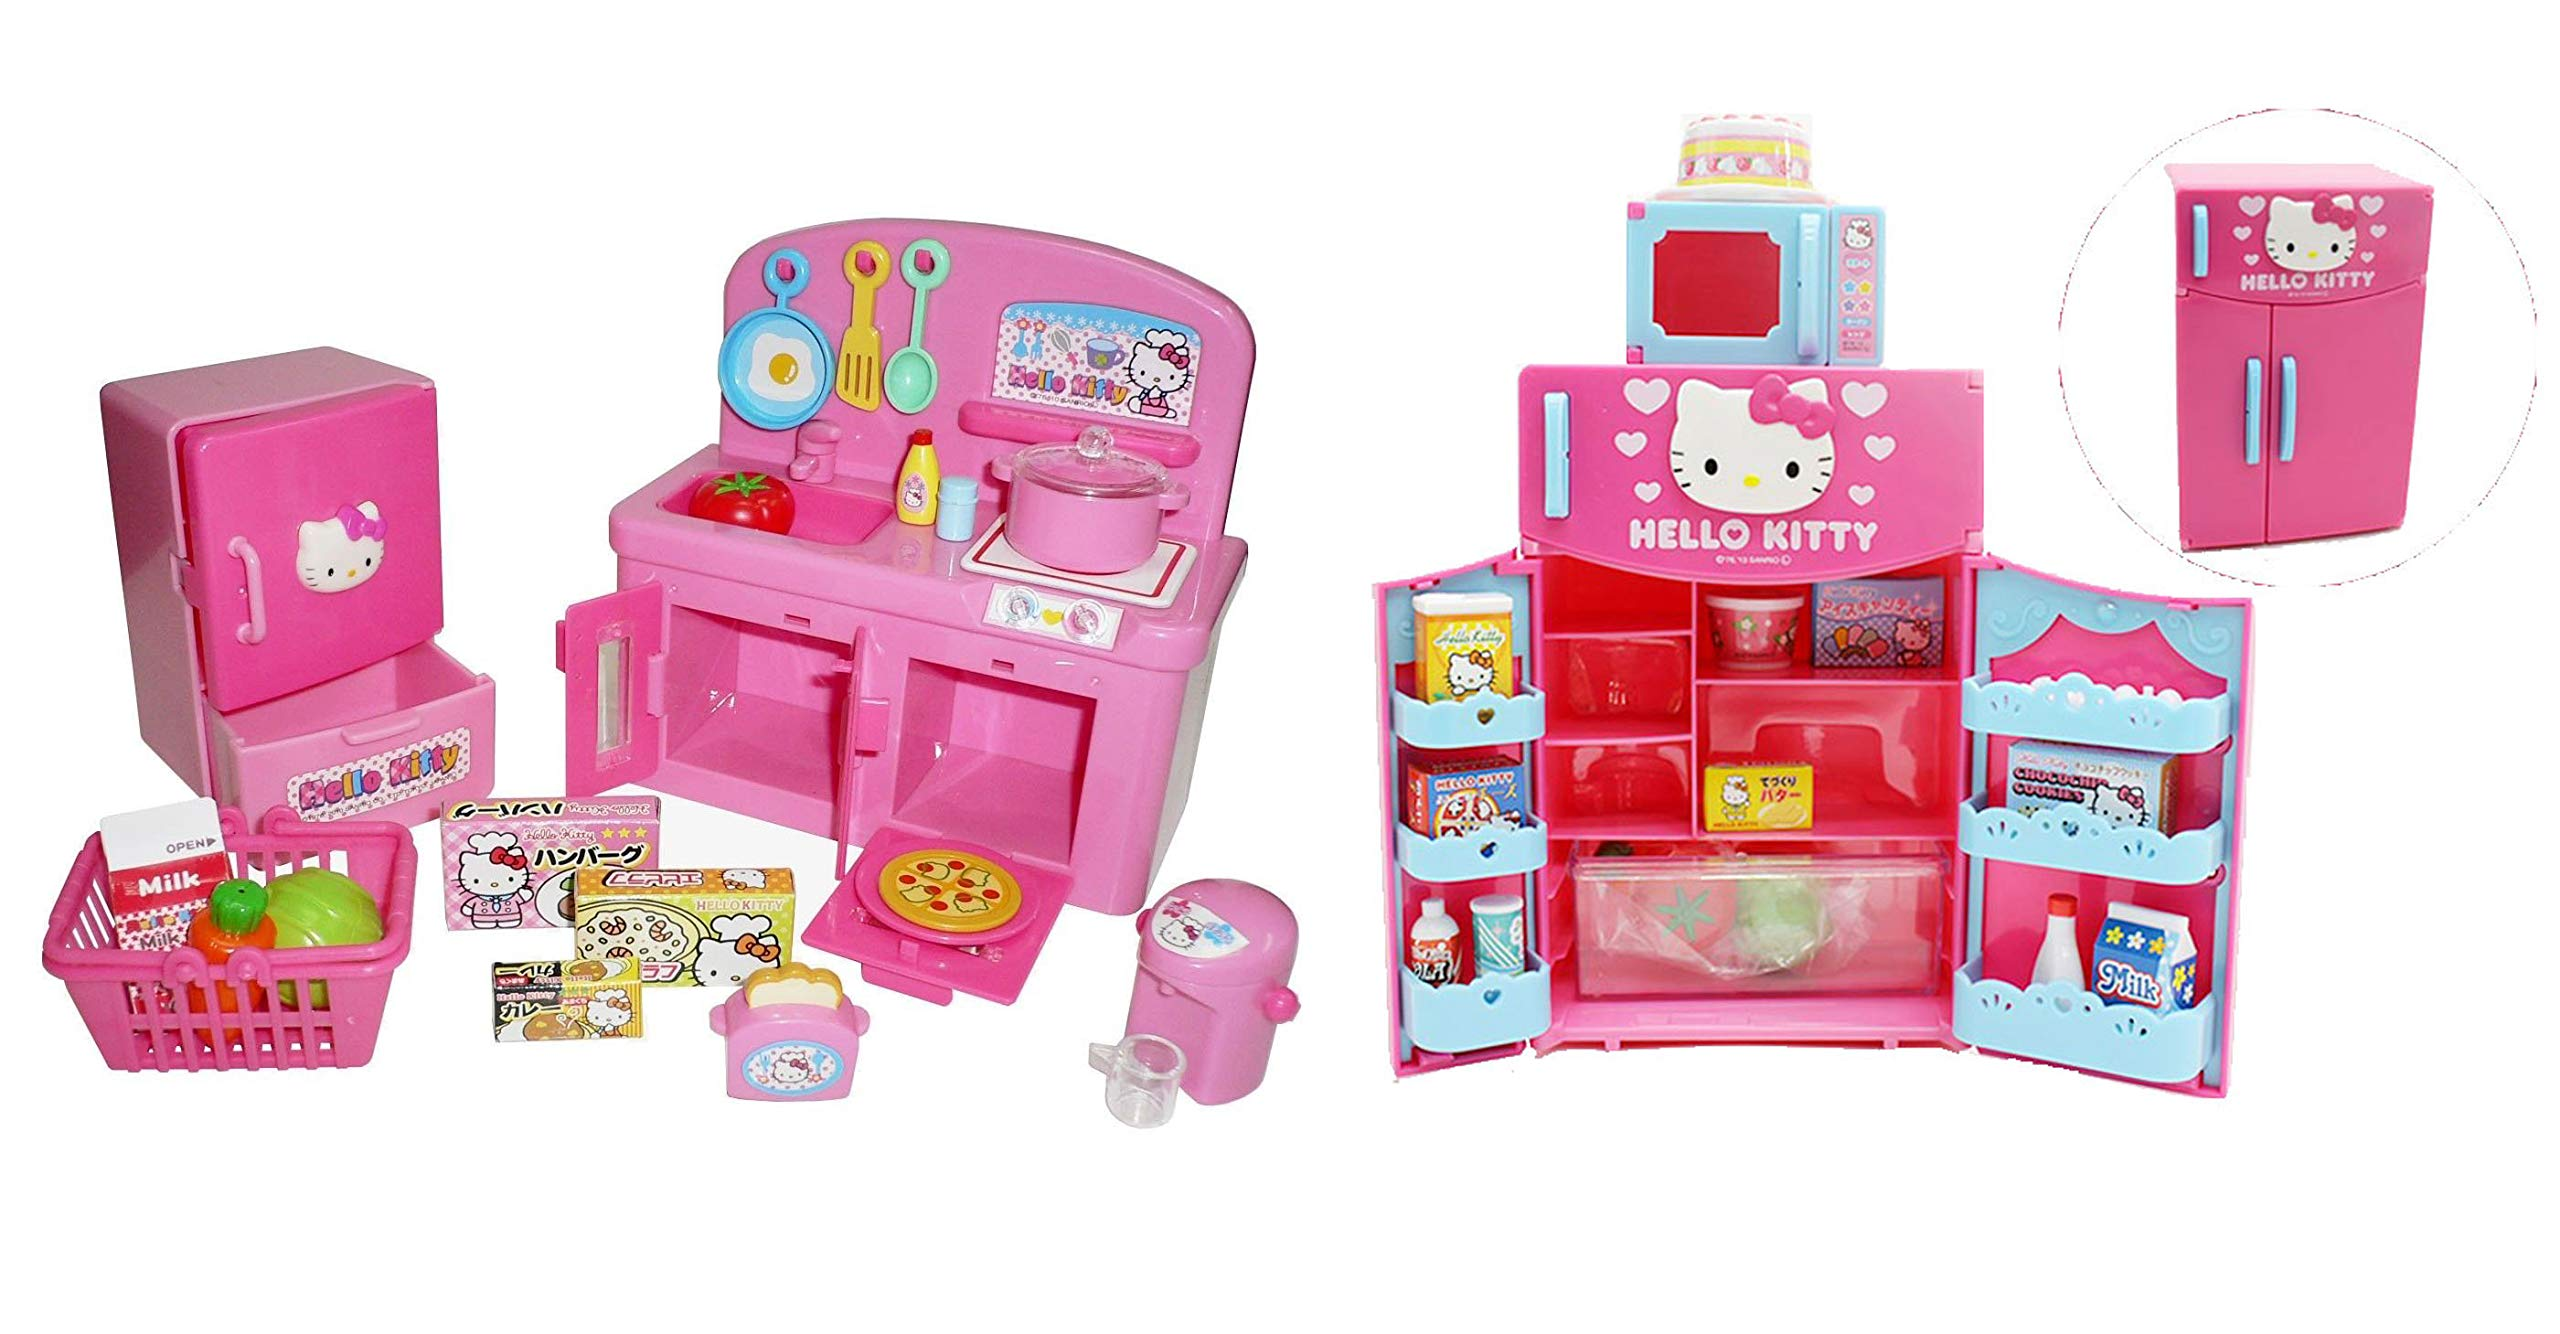 Hello Kitty Kitchen and Refrigerator Sets Sold Together - Everything Needed for Cooking Play by Hello Kitty